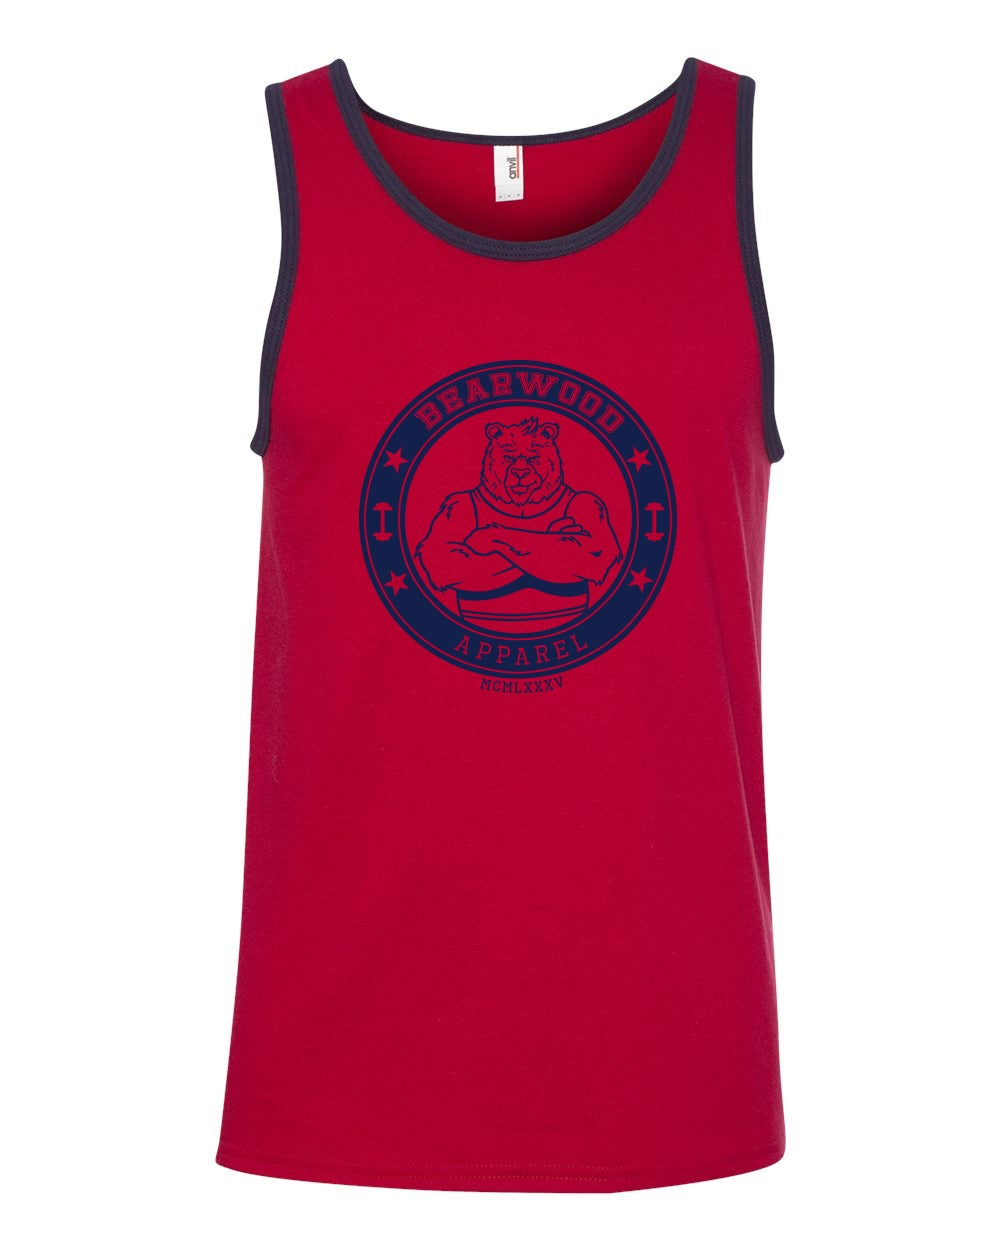 Image of IBC Edition Red/Navy Blue Tank - A-986